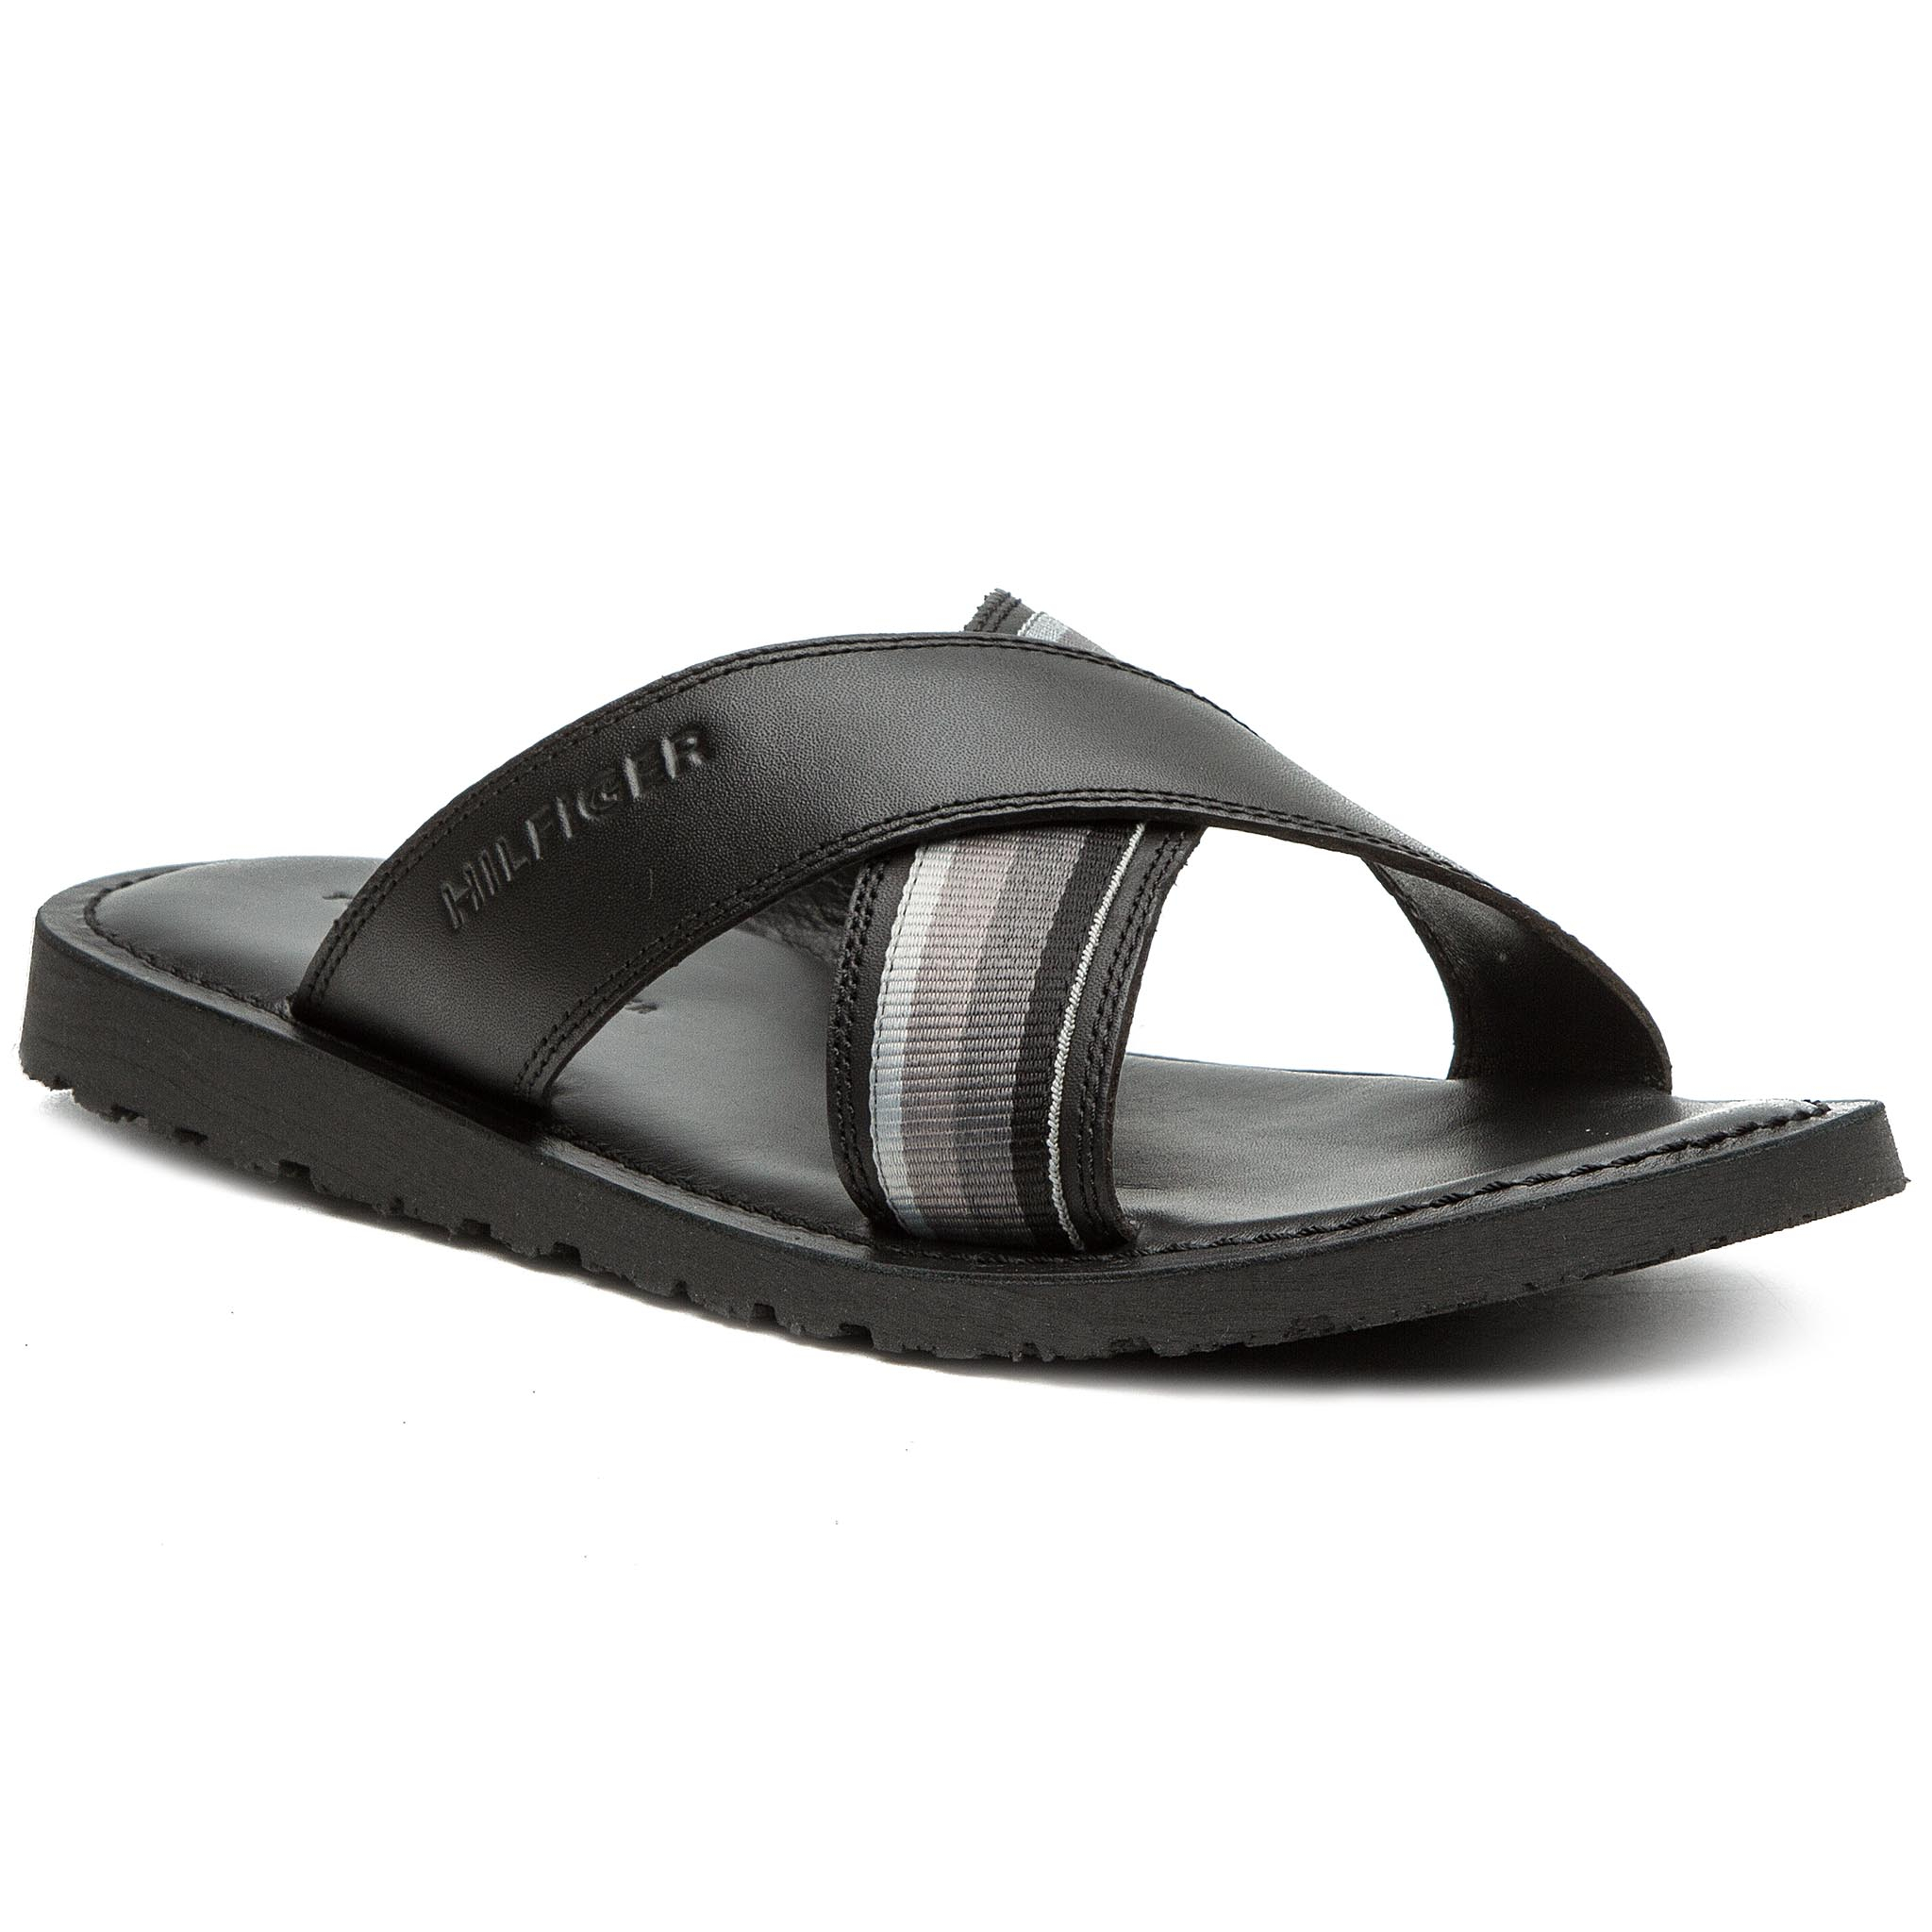 Șlapi TOMMY HILFIGER - Criss Cross Leather Sandal FM0FM02120 Black 990